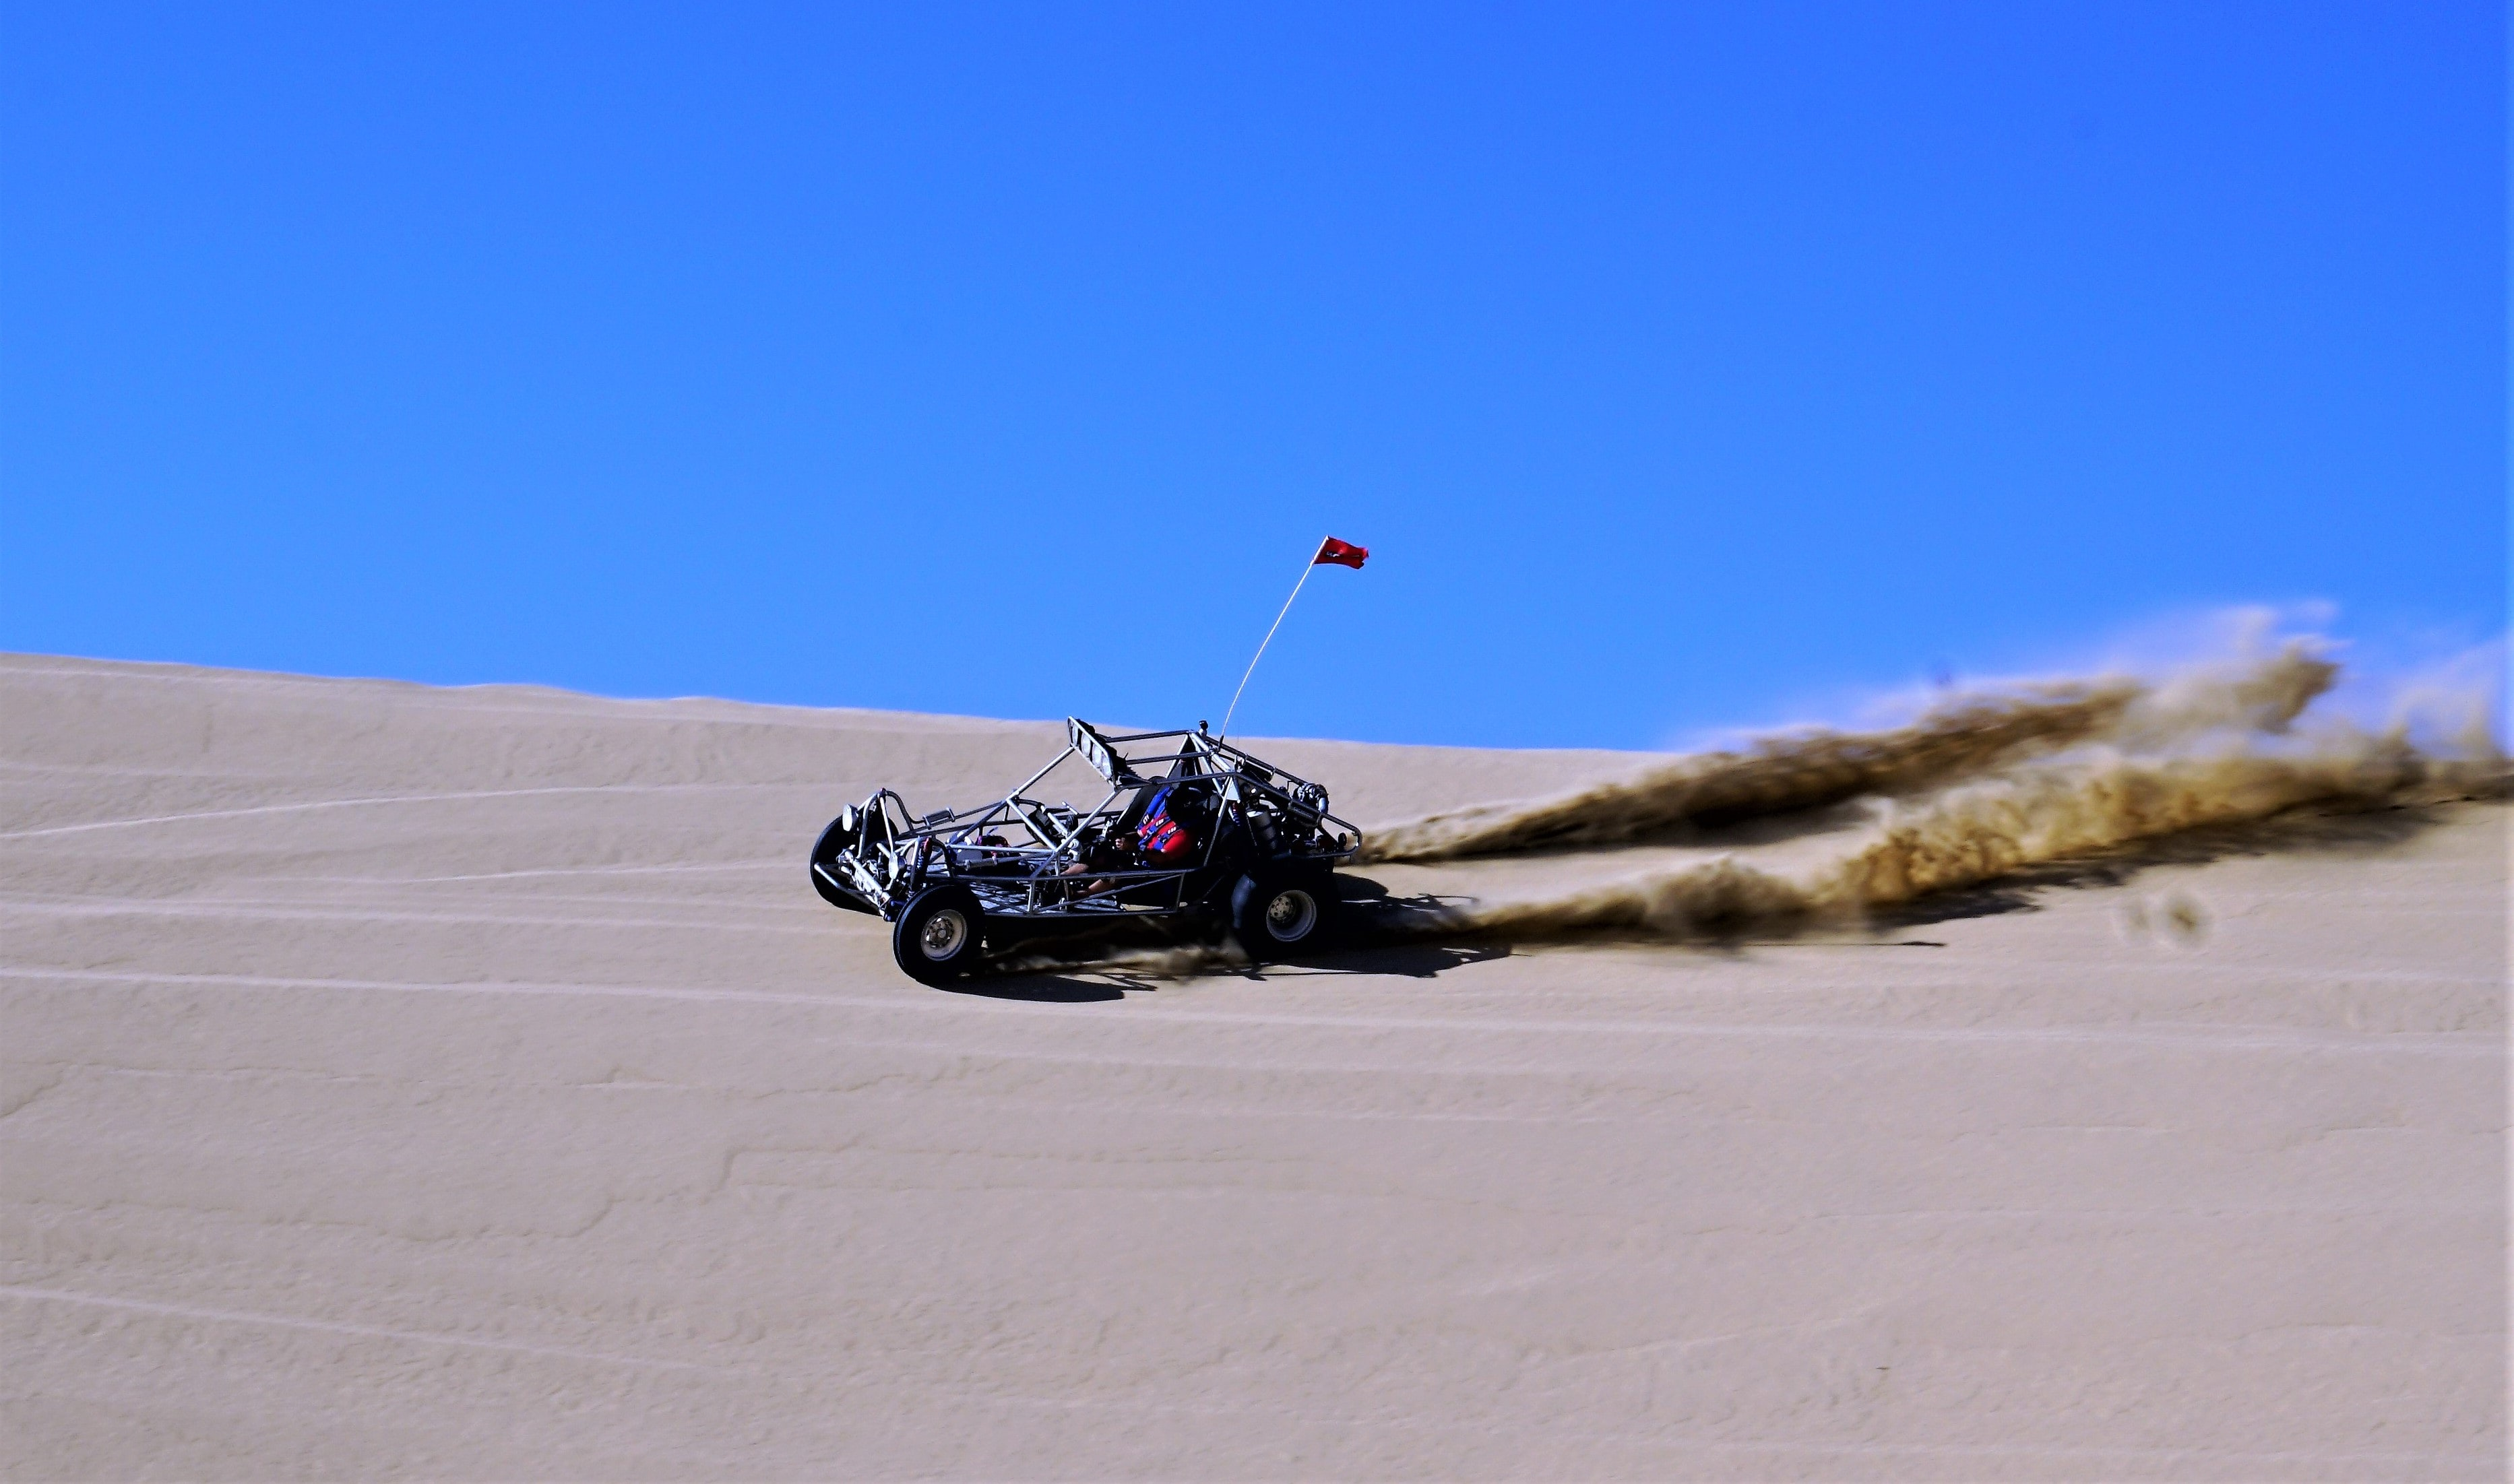 black and blue dune buggy driving on desert